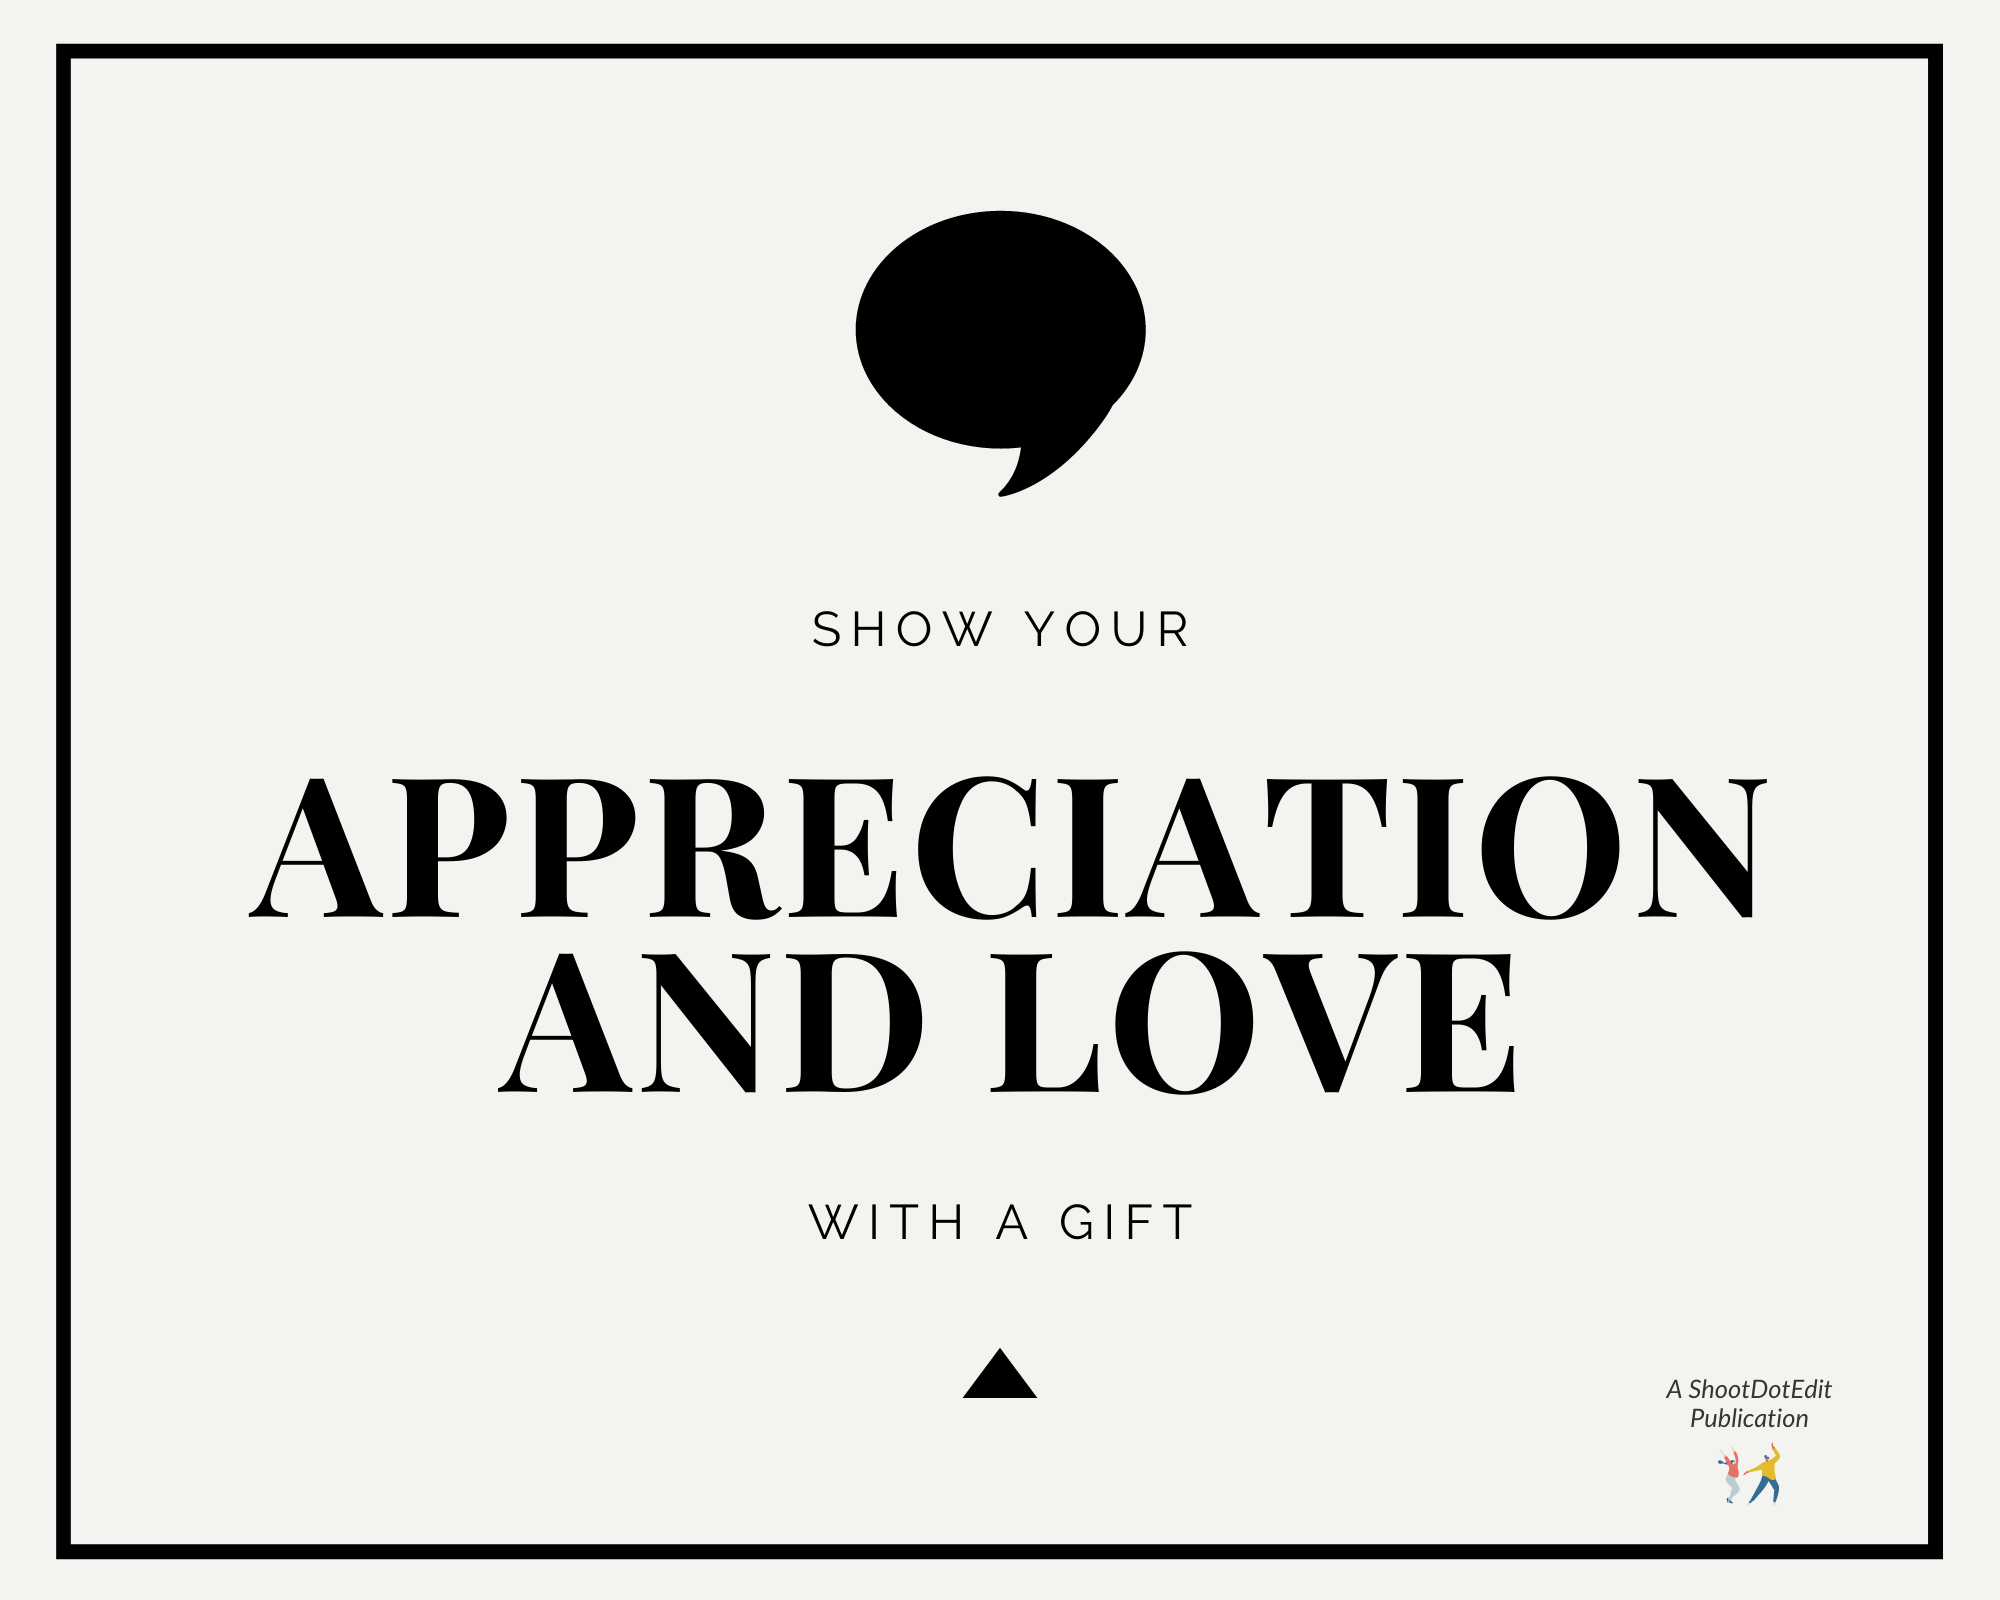 Infographic stating Show your appreciation and love with a gift